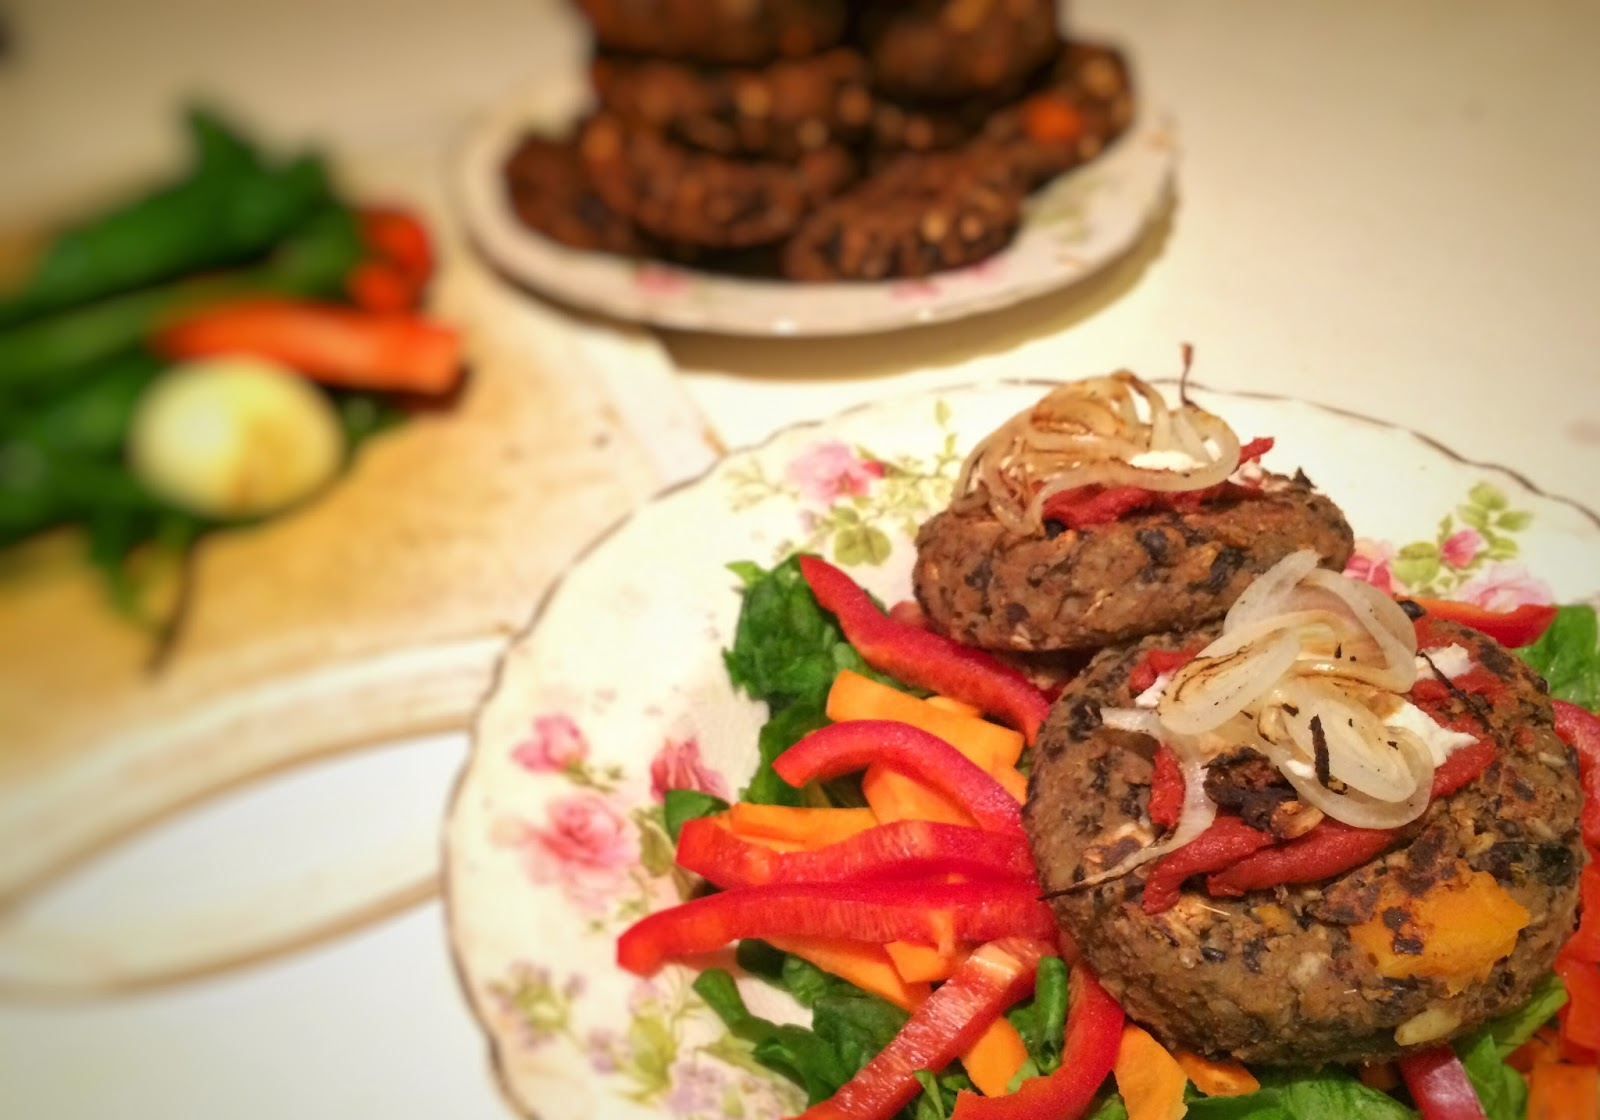 Byol argentina food culture and black bean barley burgers for Argentine cuisine culture